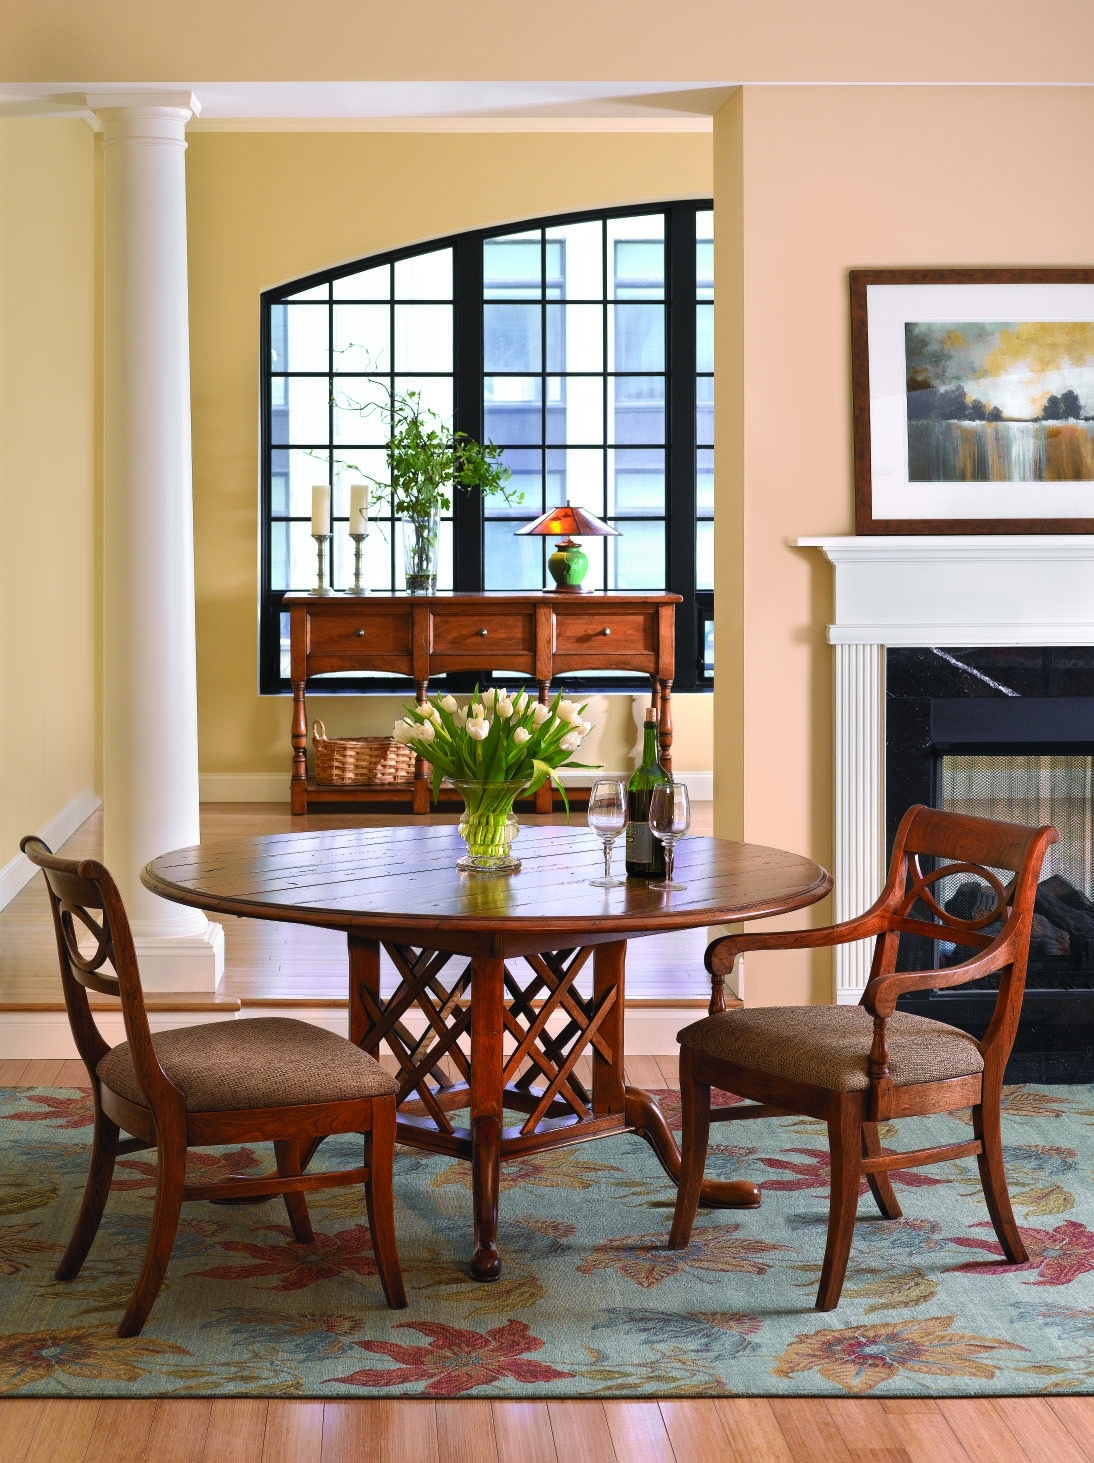 Patterson Furniture Company – Quality American Made Furniture For With Regard To Most Up To Date Patterson 6 Piece Dining Sets (Photo 18 of 20)